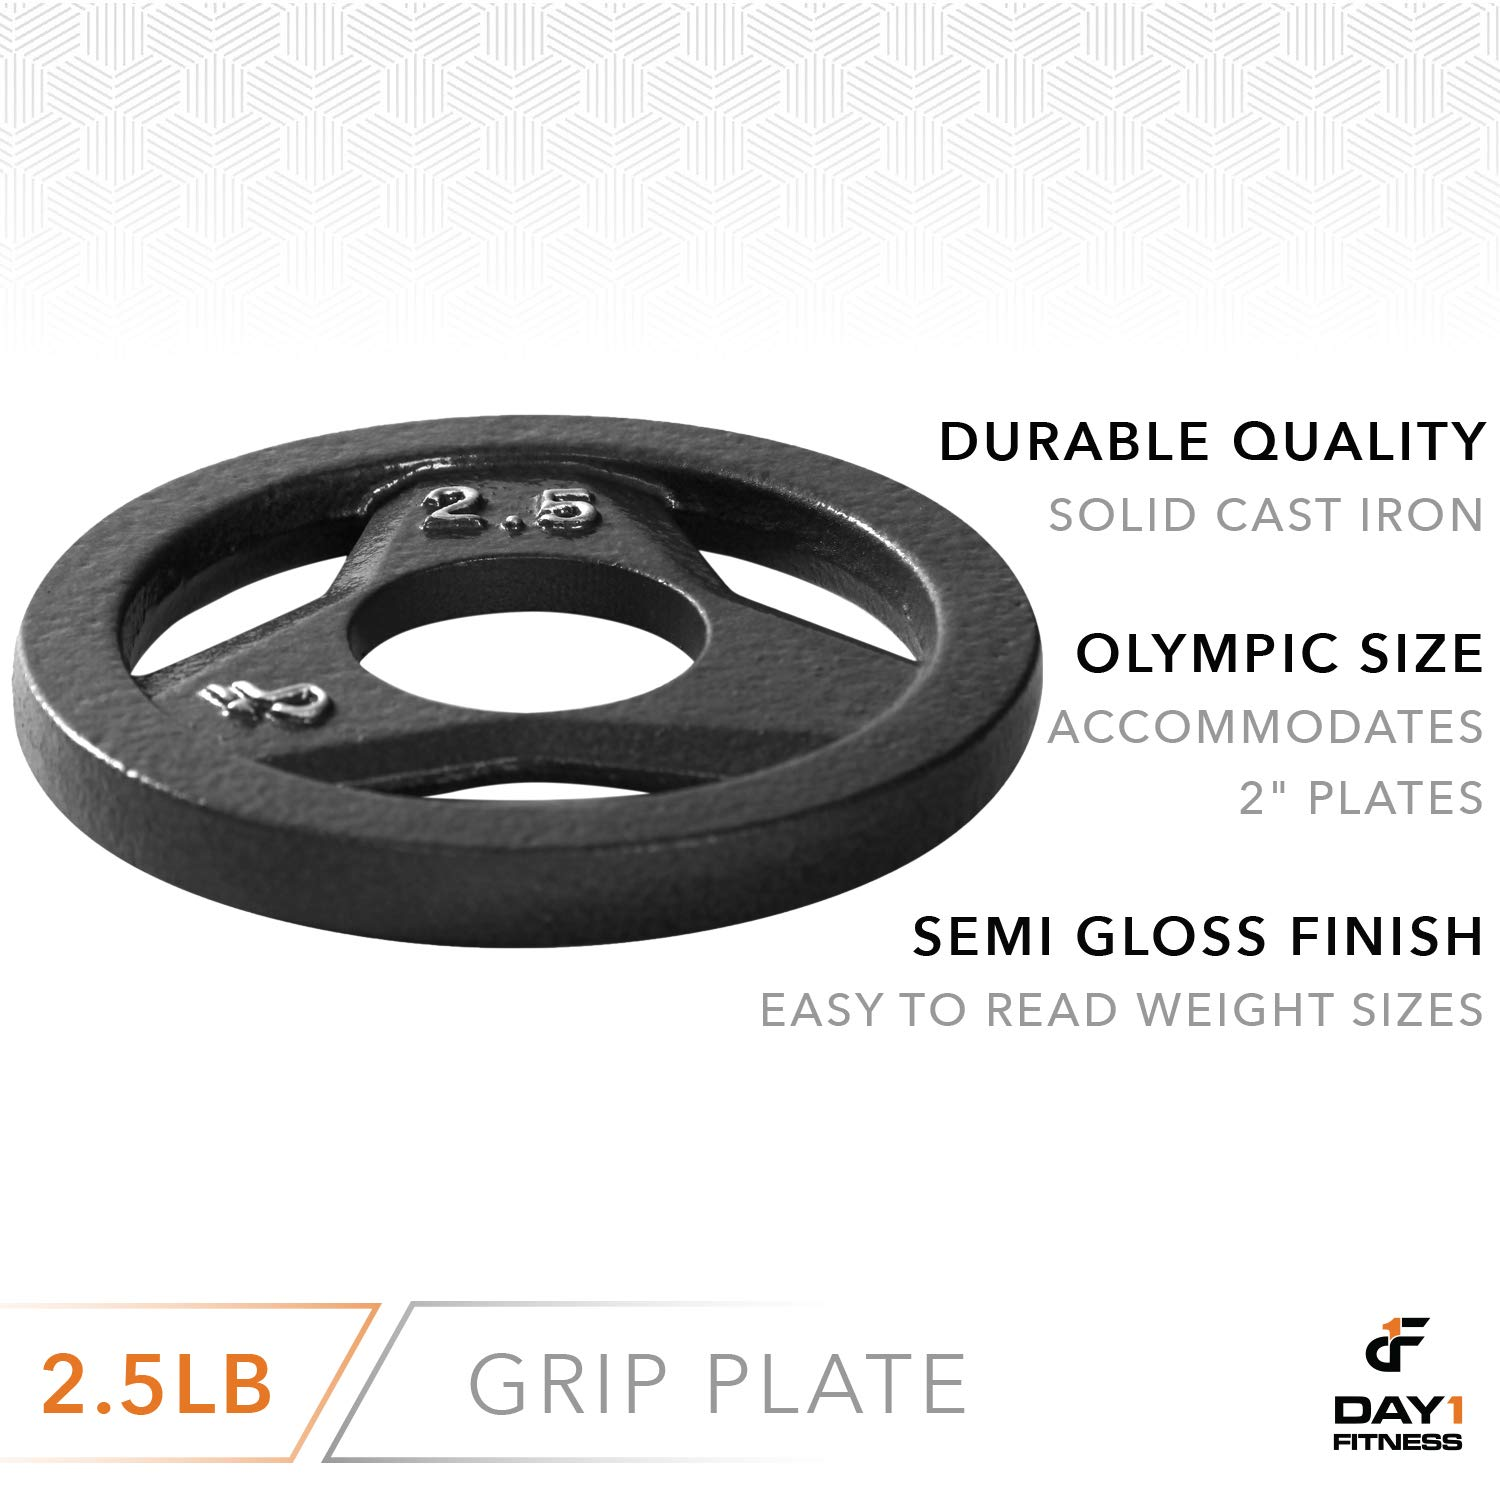 """Day 1 Fitness Cast Iron Olympic 2-Inch Grip Plate for Barbell, 2.5 Pound Single Plate Iron Grip Plates for Weightlifting, Crossfit - 2"""" Weight Plate for Bodybuilding by Day 1 Fitness (Image #3)"""